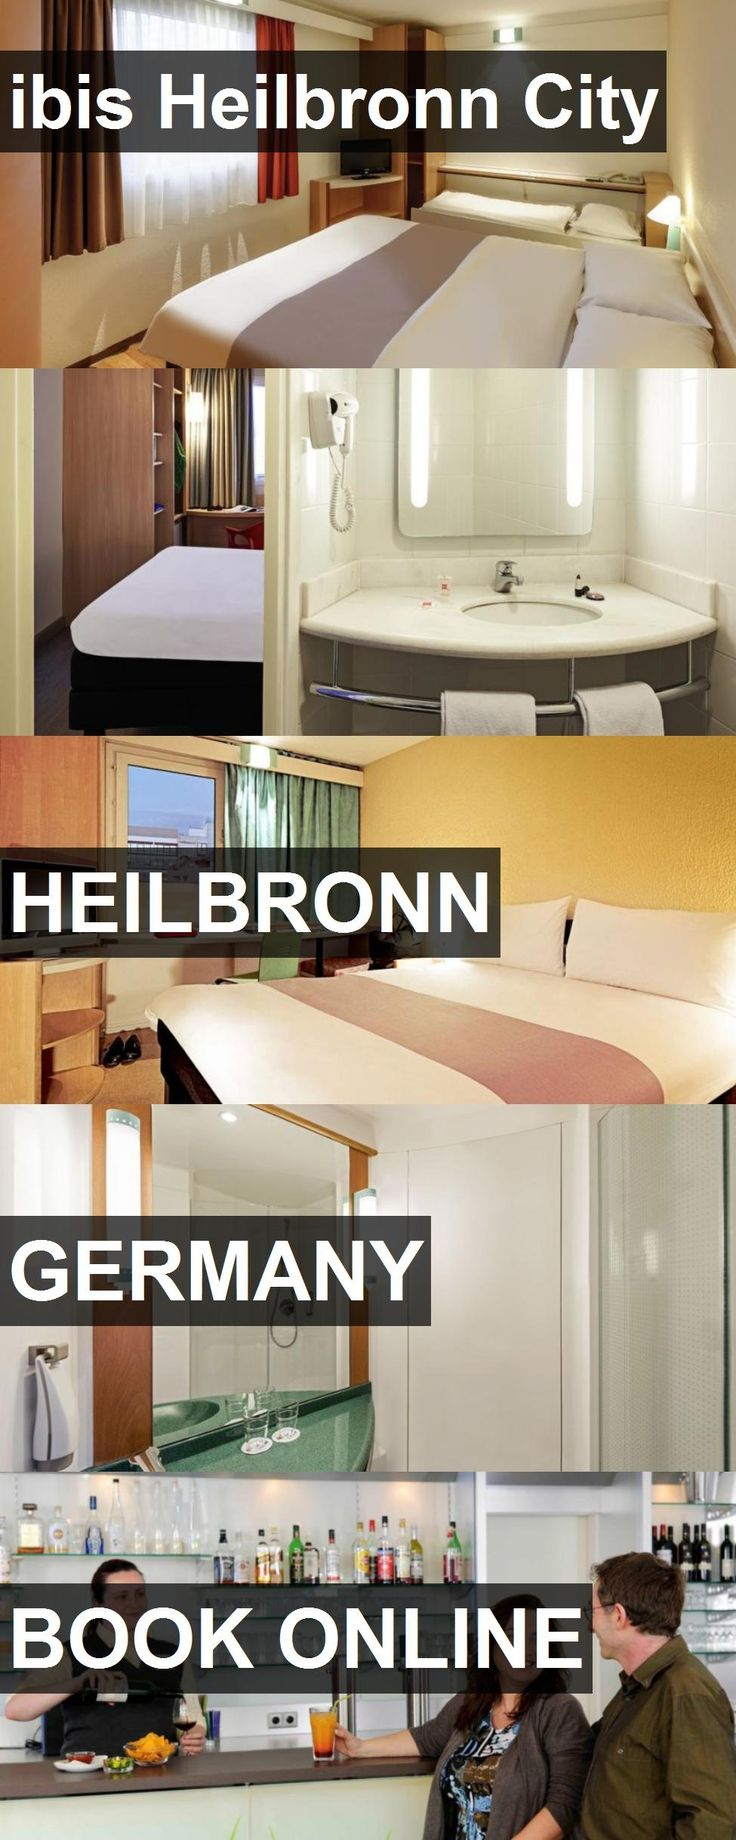 Hotel ibis Heilbronn City in Heilbronn, Germany. For more information, photos, reviews and best prices please follow the link. #Germany #Heilbronn #hotel #travel #vacation